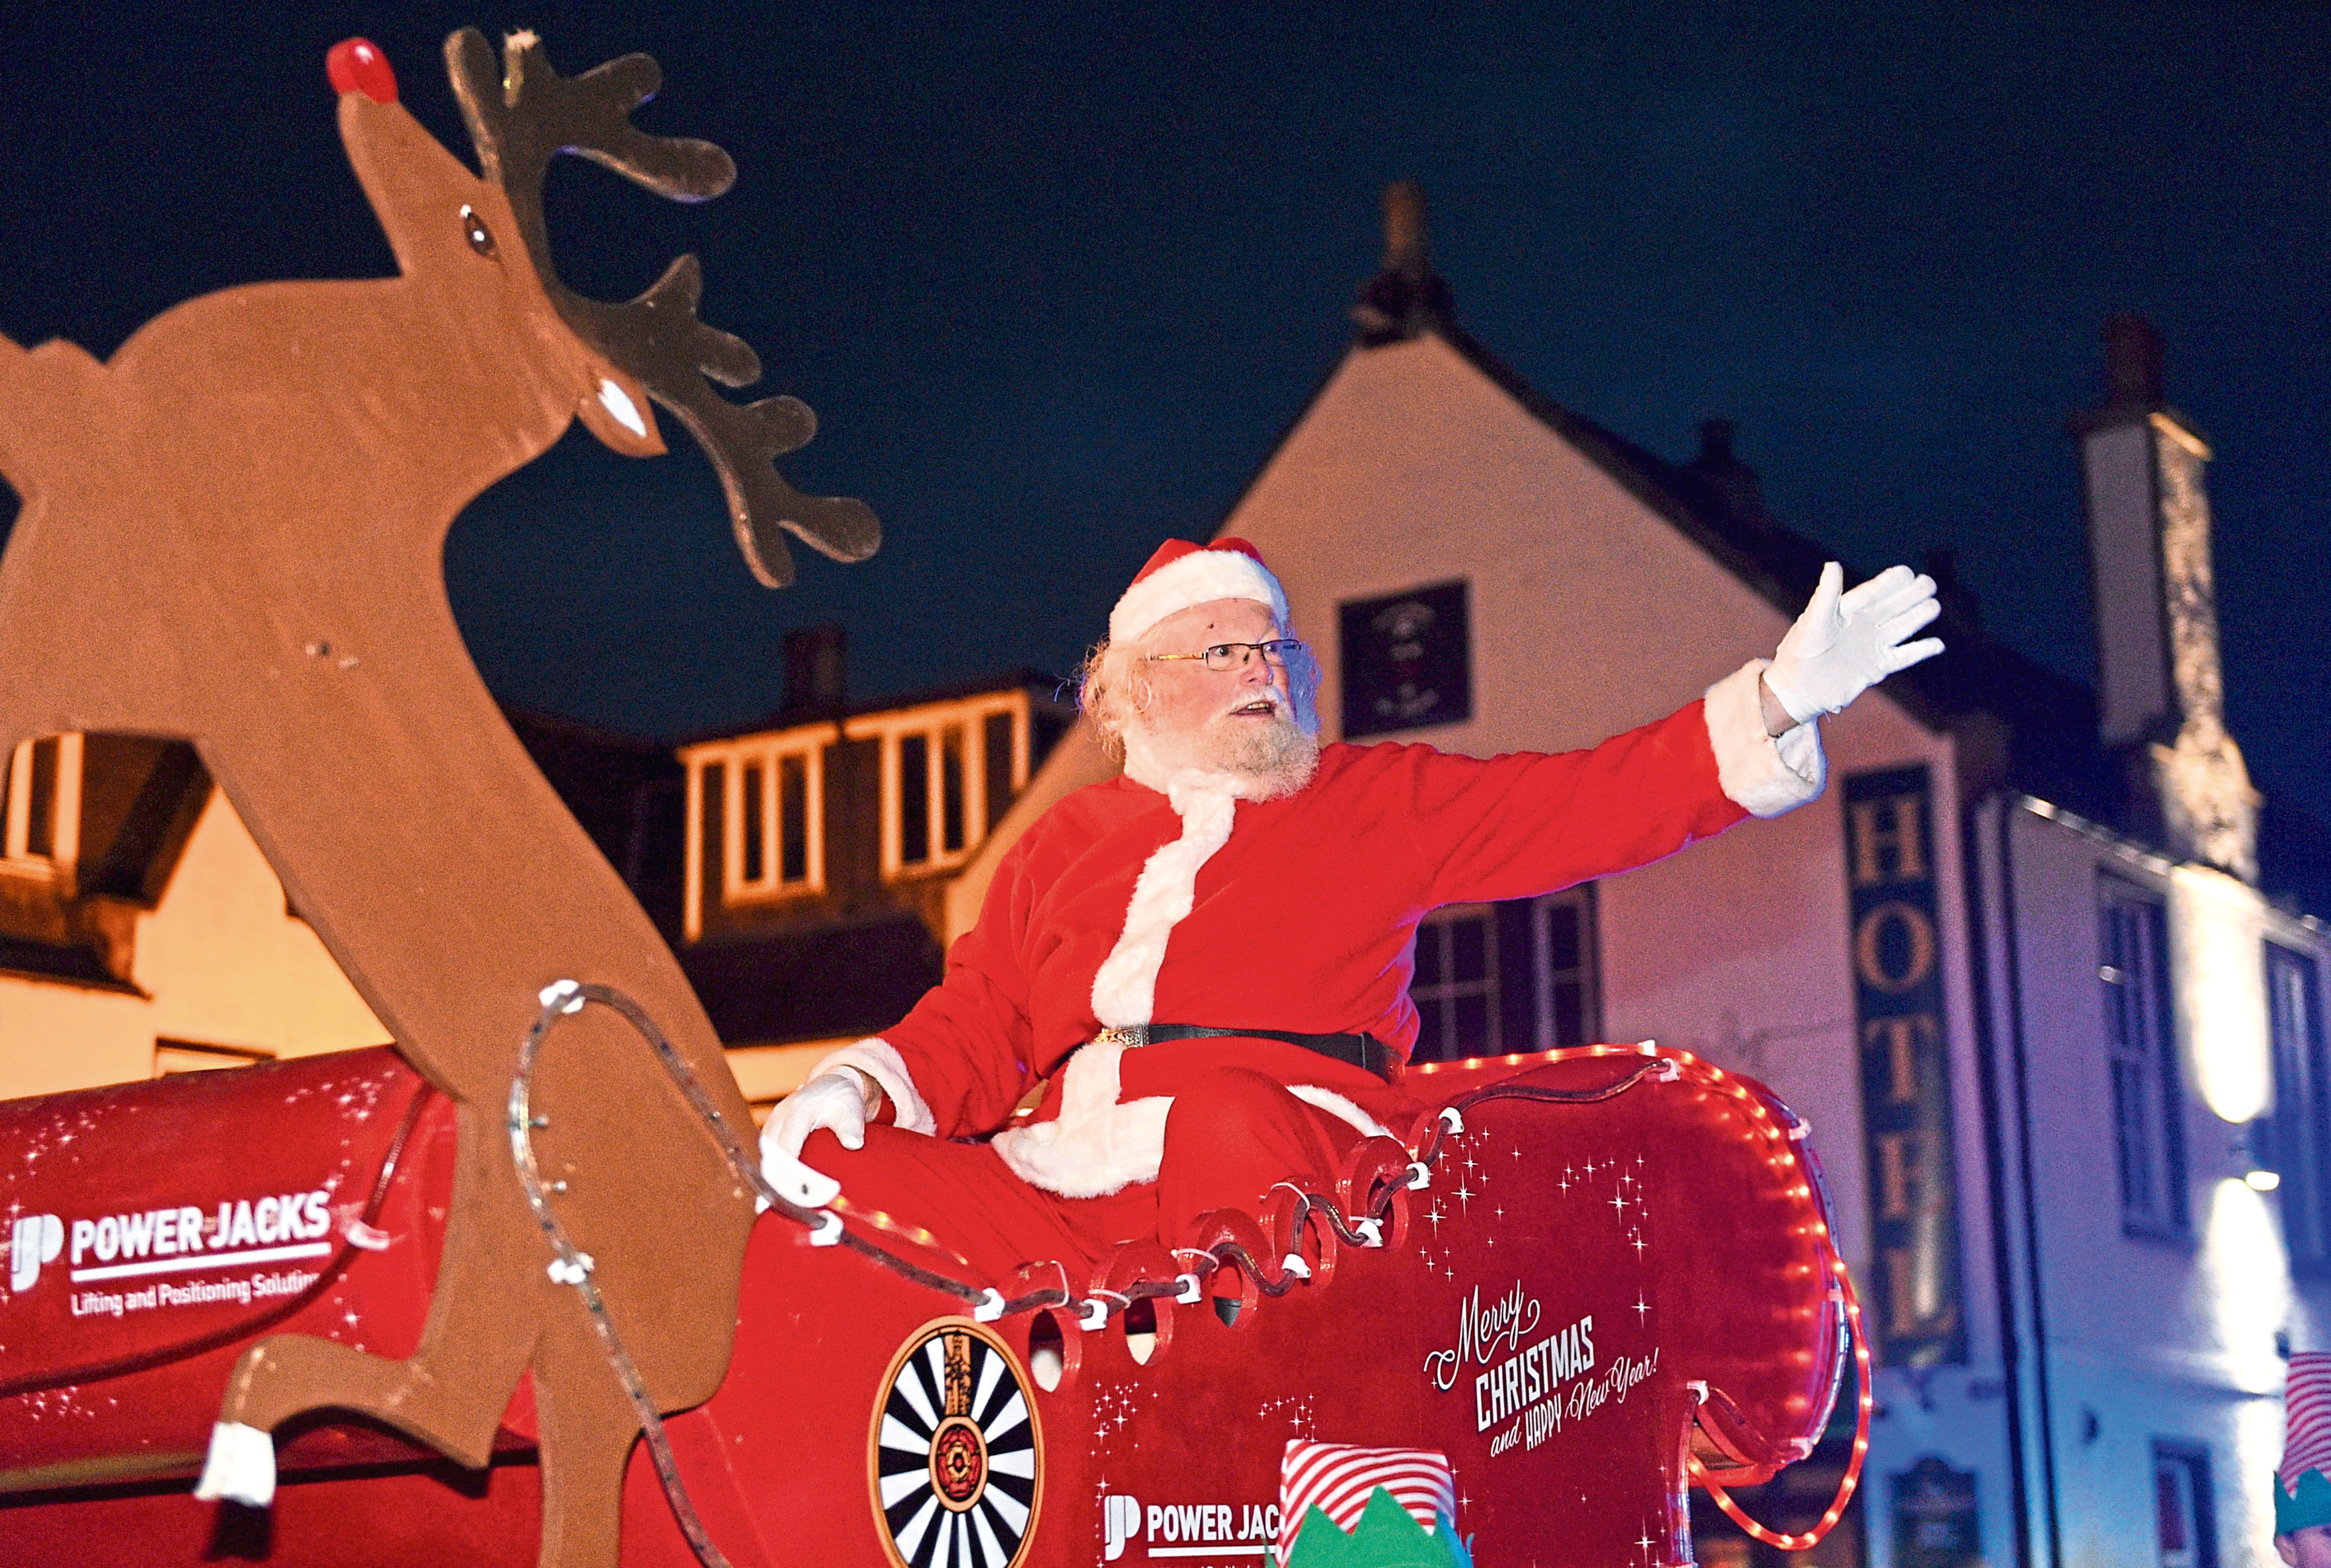 Pictured is the Ellon Christmas Parade. Pictured is Santa in the parade. Picture by DARRELL BENNS     Pictured on 17/11/2018